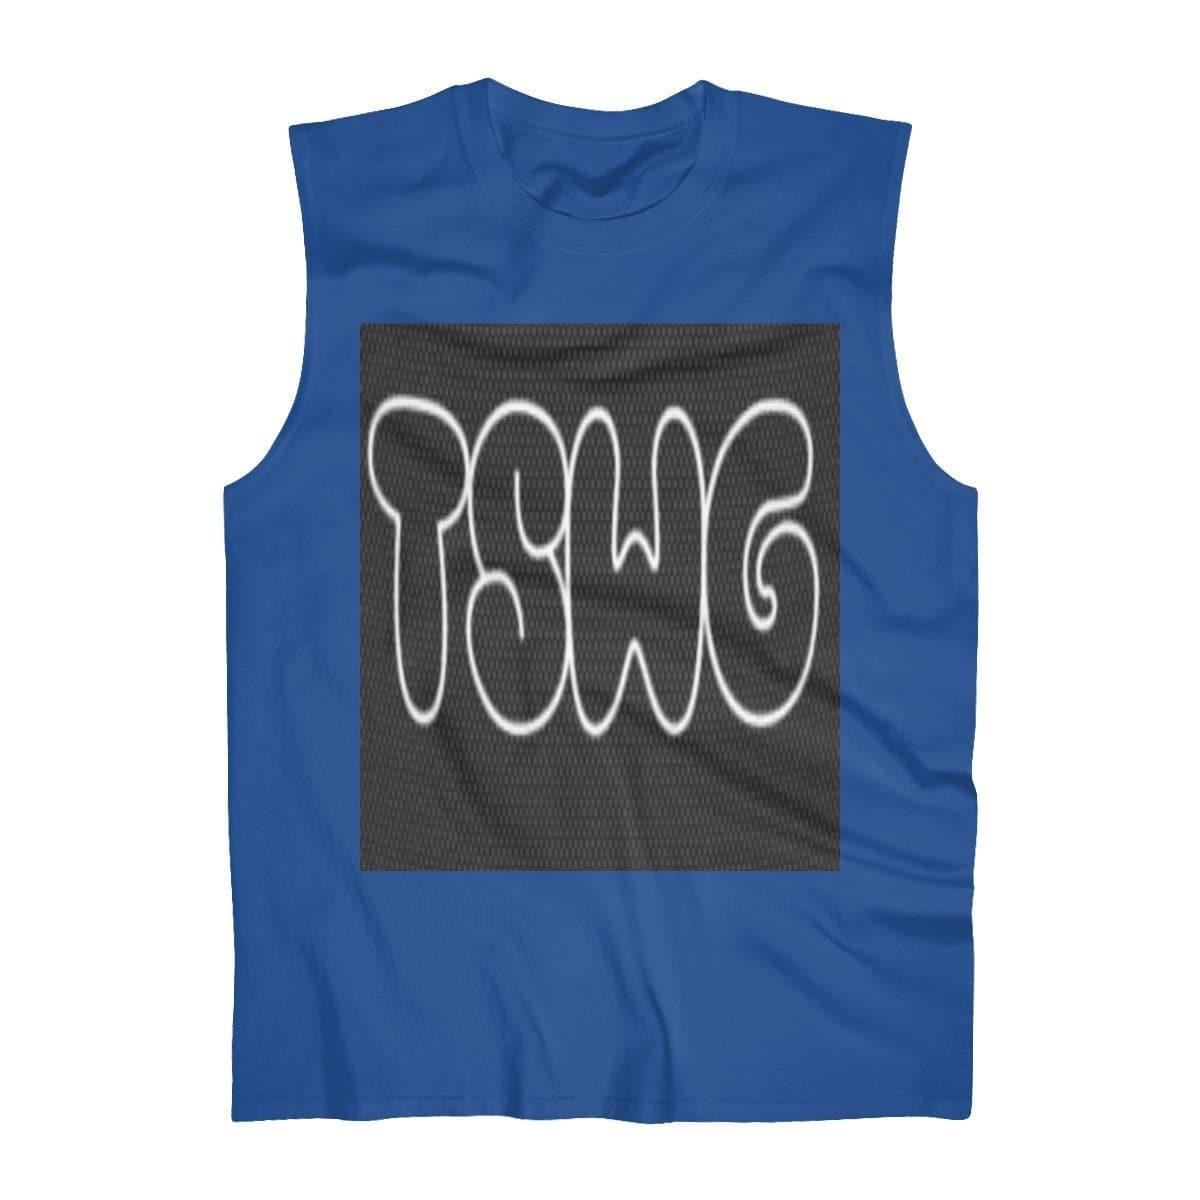 TSWG (Tough Smooth Well Groomed) Men's Ultra Cotton Sleeveless Tank - Tie-Fly